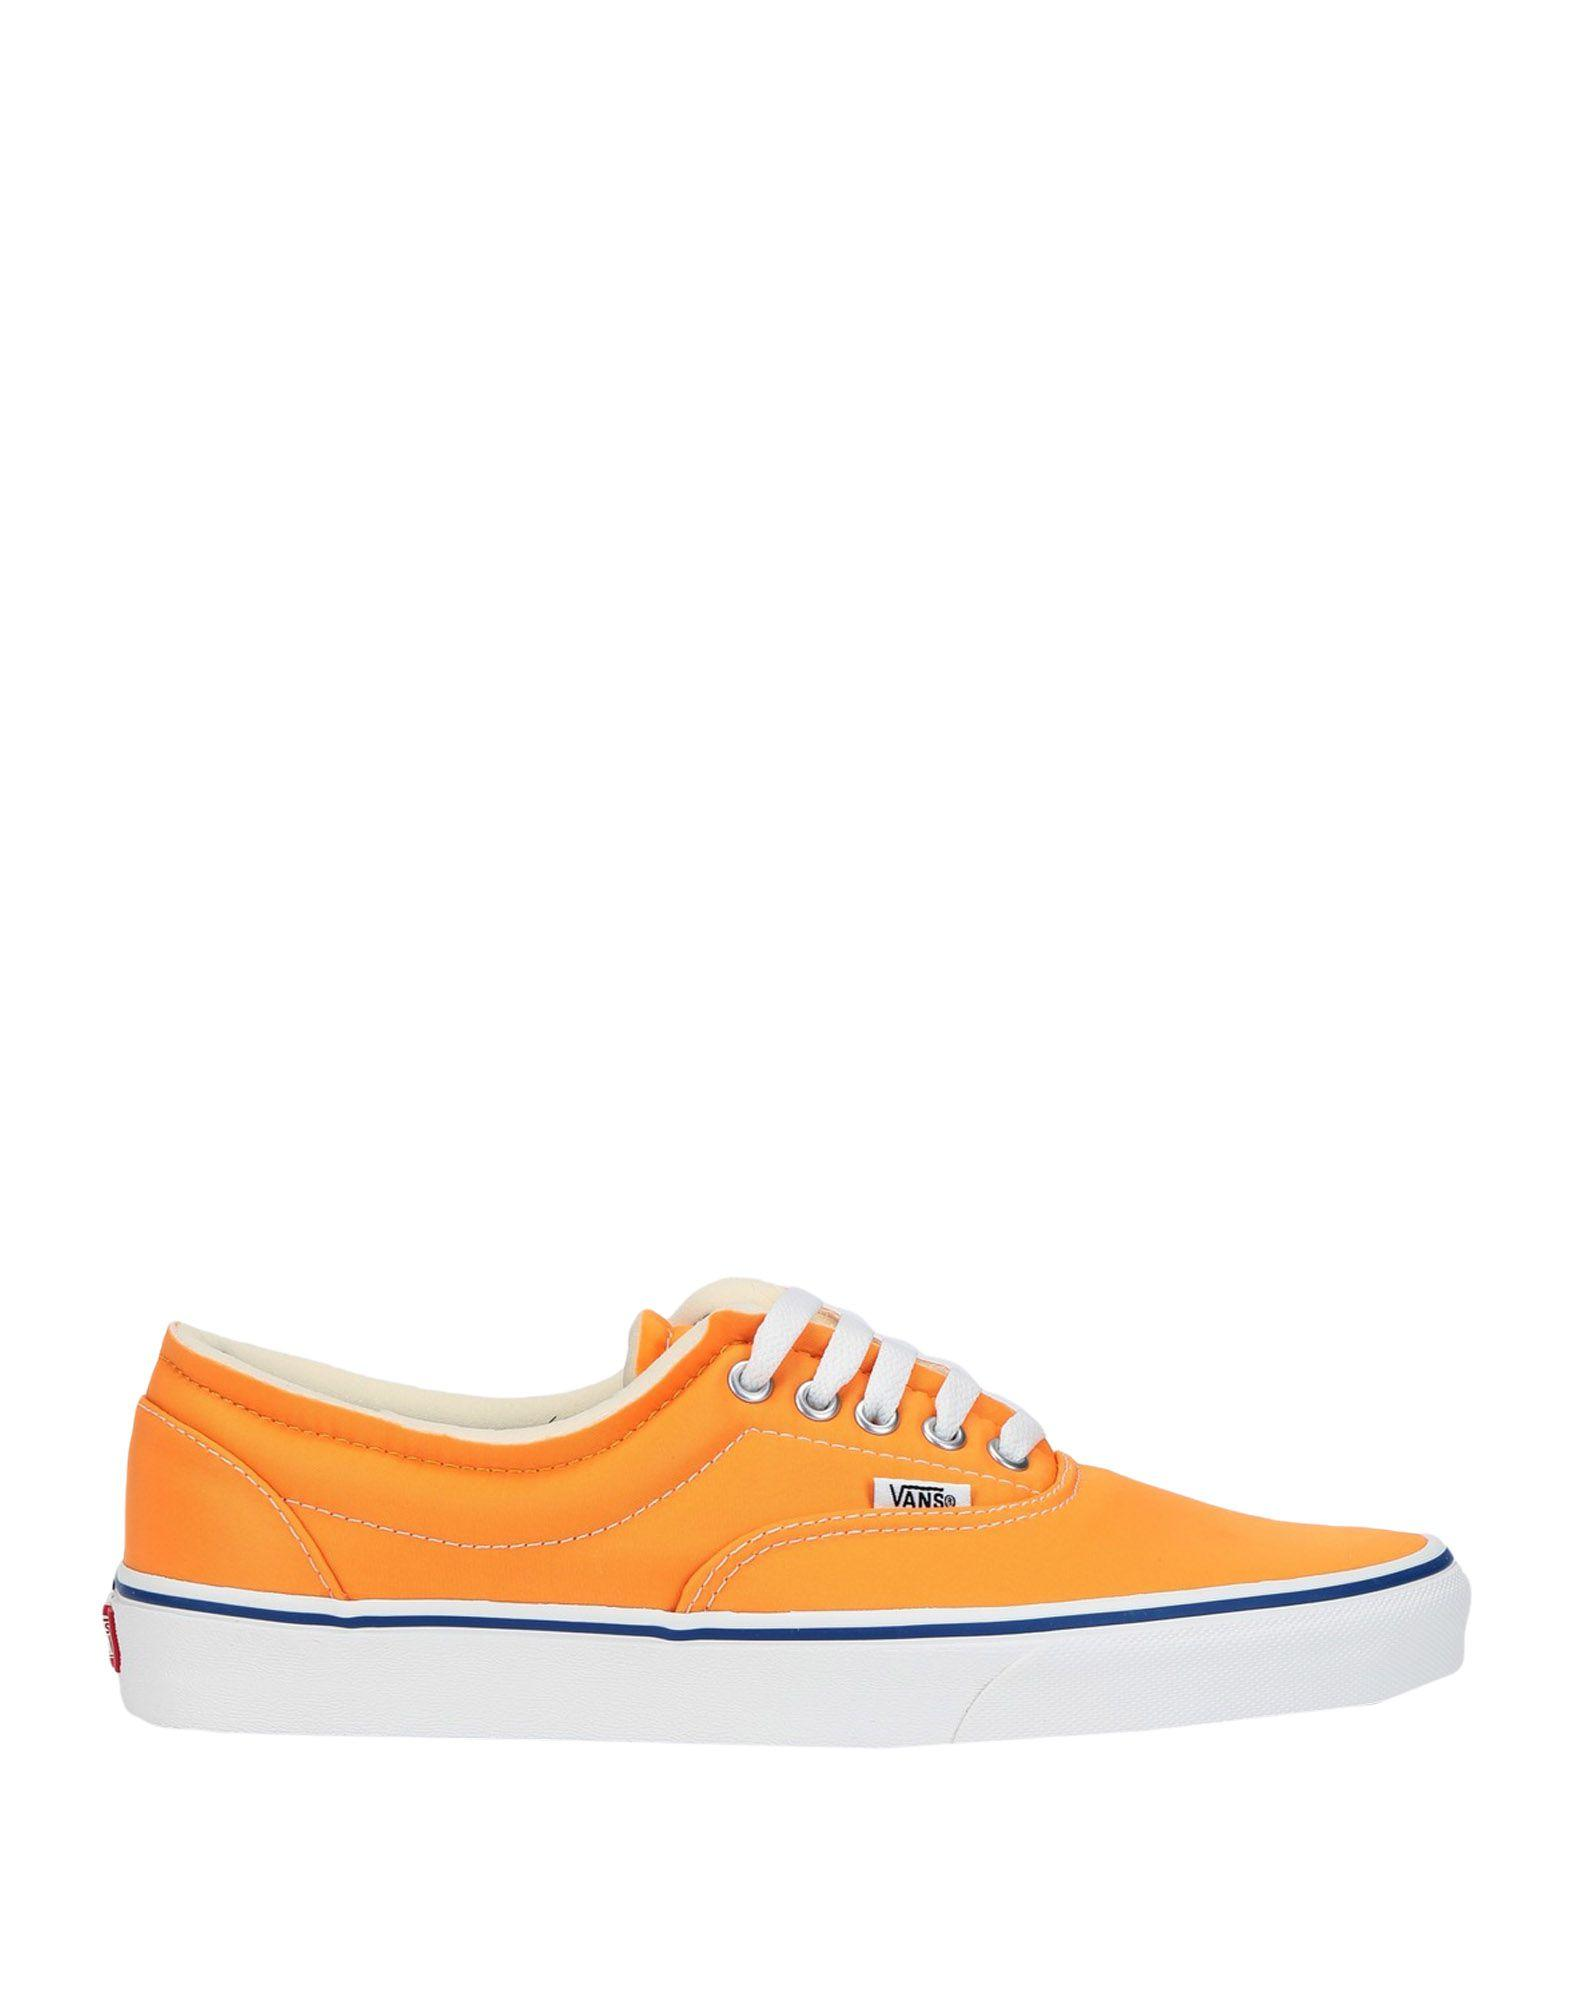 bc4b11fb0f59f6 Vans - Orange Low-tops   Sneakers for Men - Lyst. View fullscreen